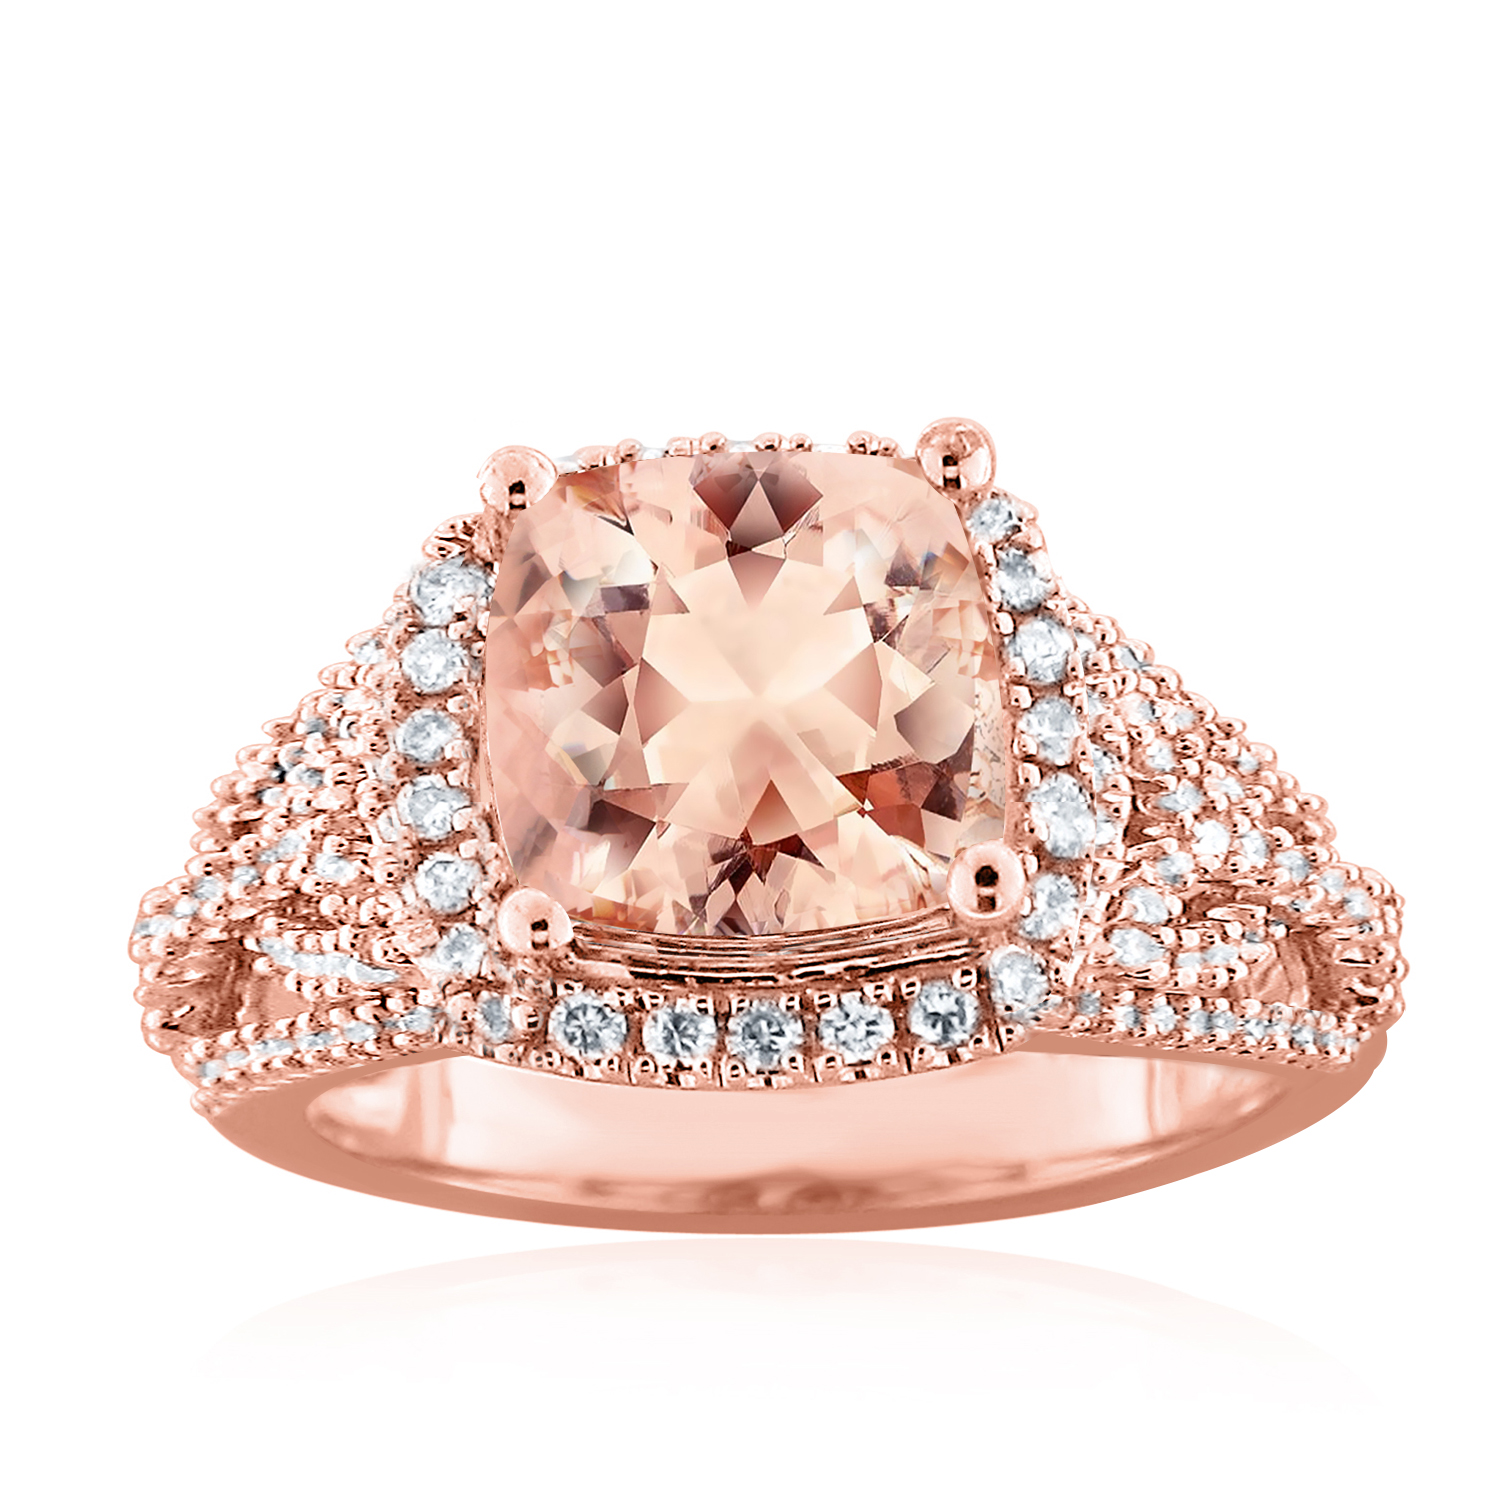 ELLEN Halo Morganite Engagement Ring In 14K Rose Gold With 1.00 Carat Cushion Stone